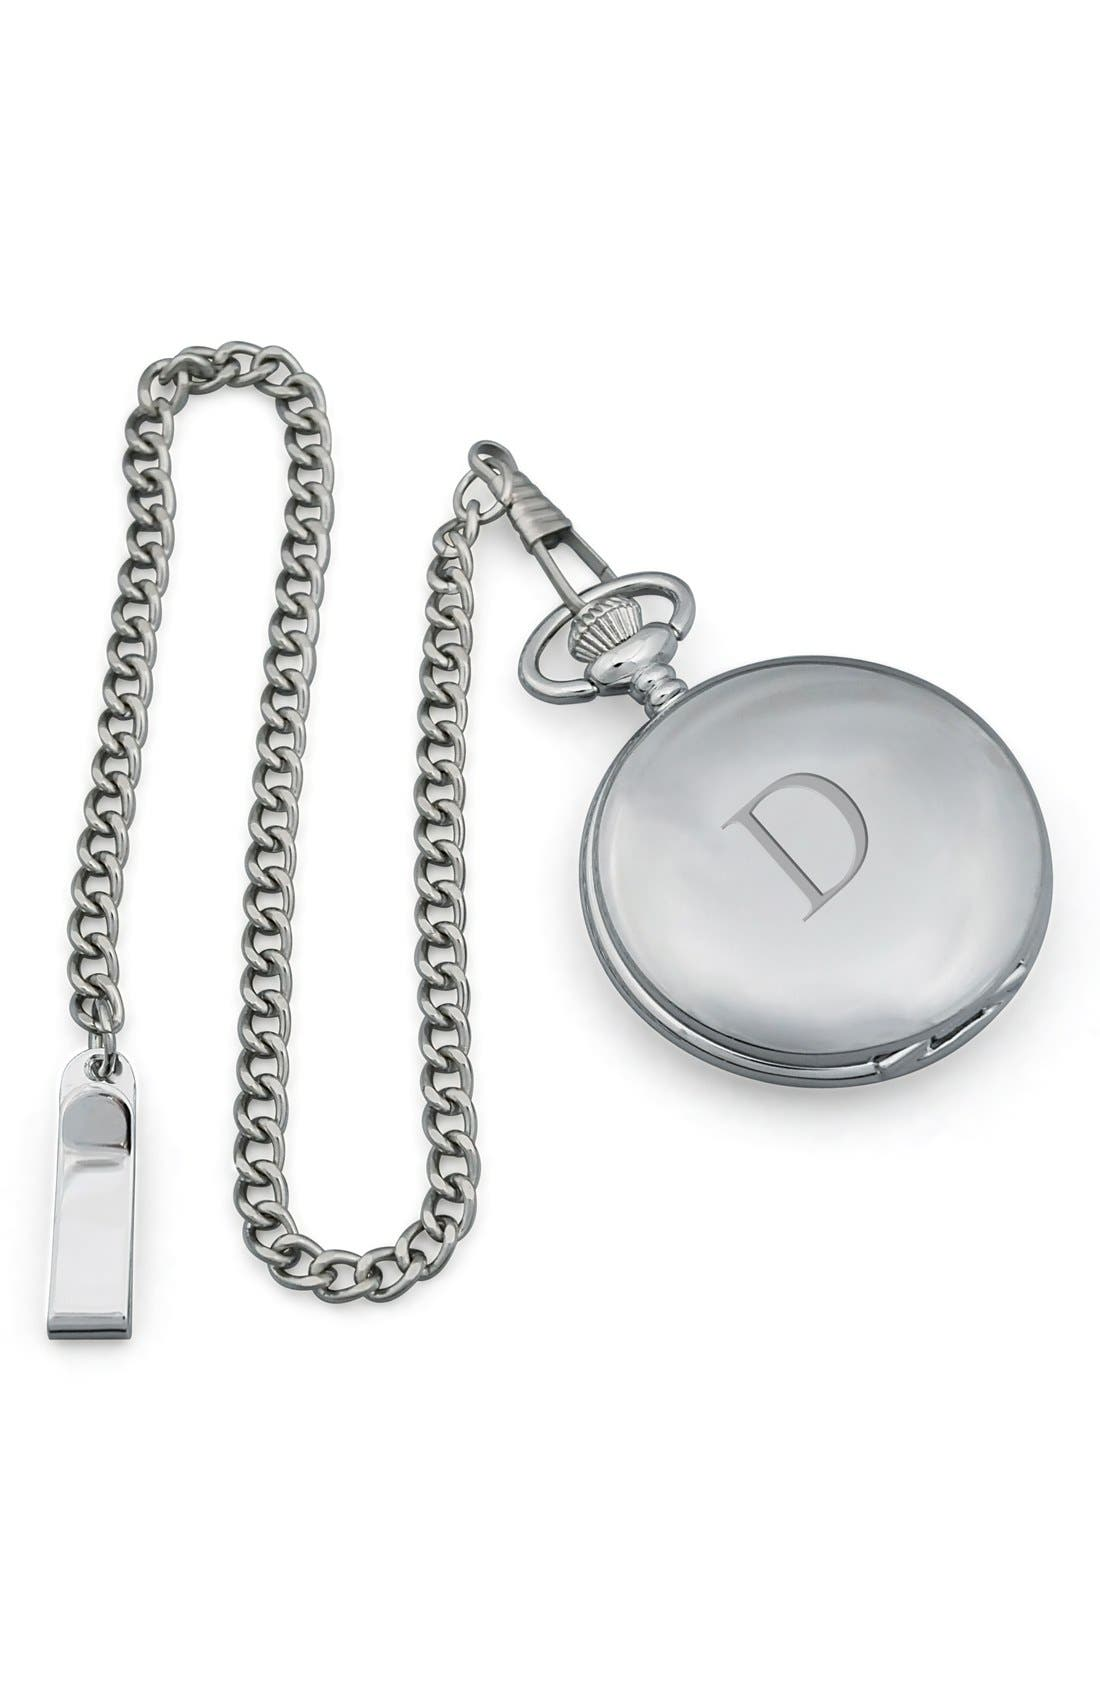 Main Image - Cathy's Concepts Silver Plate Monogram Pocket Watch, 44mm